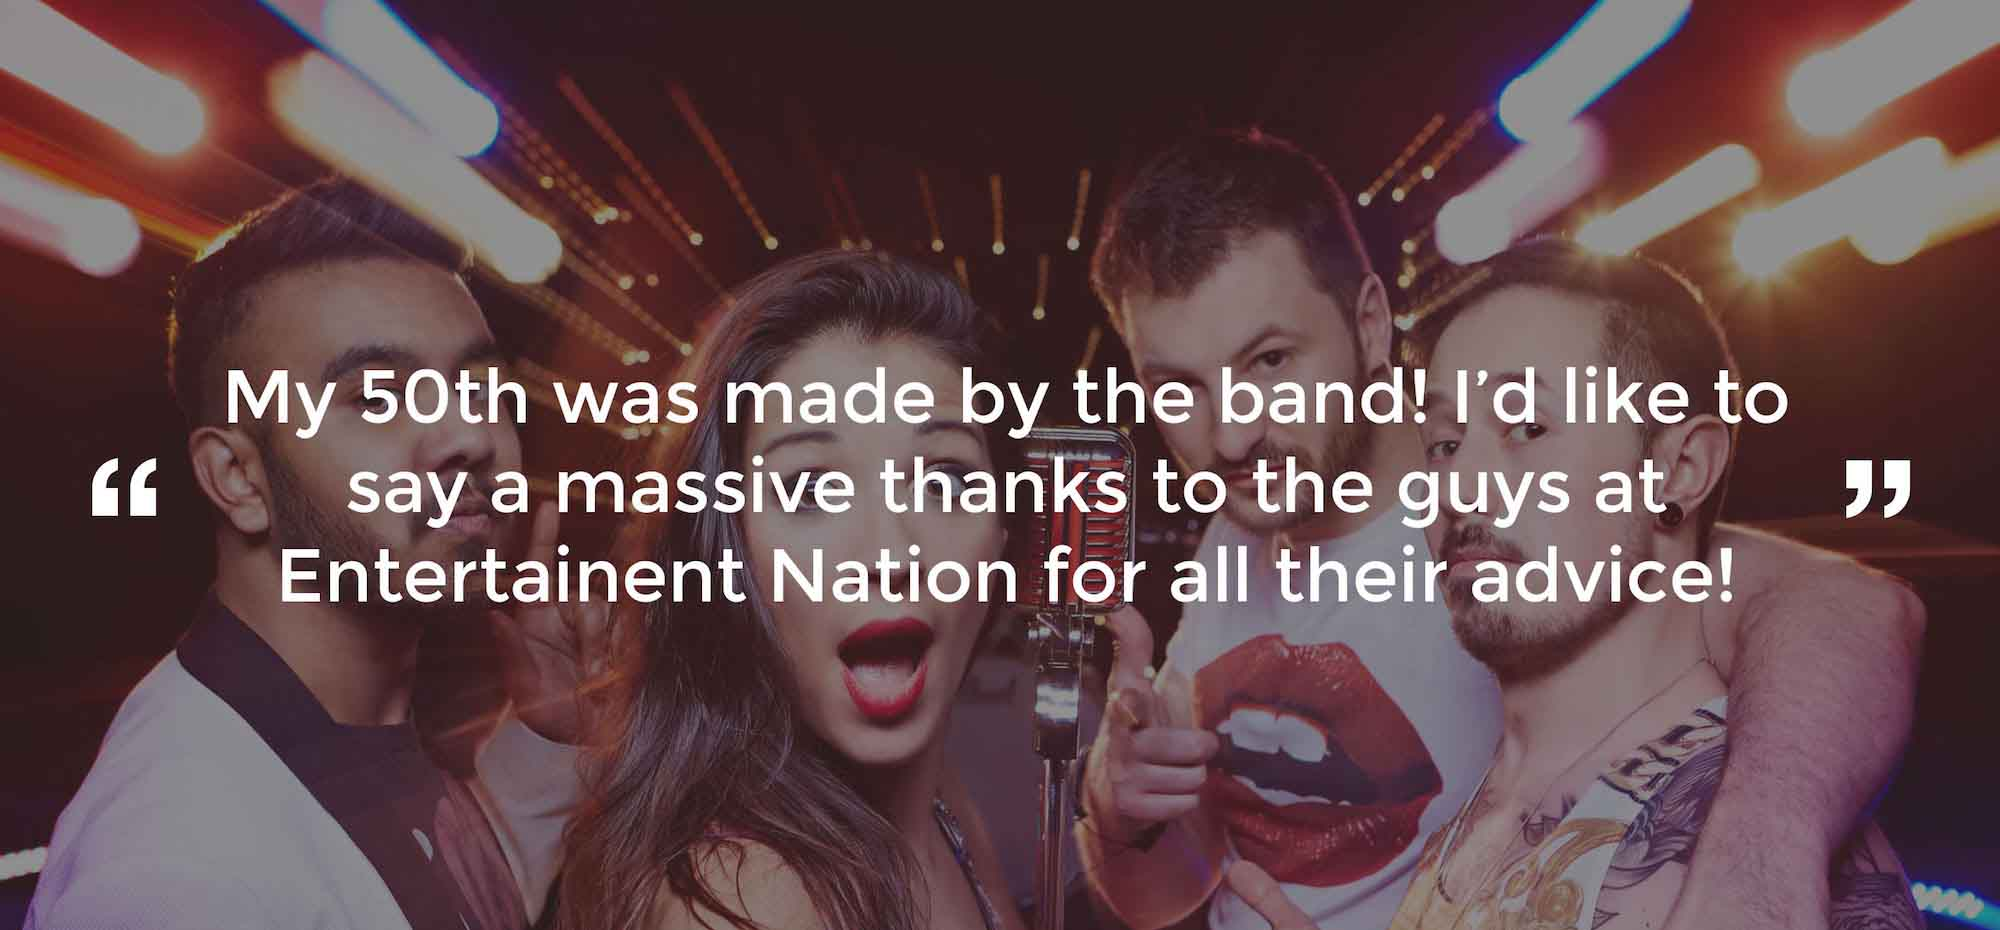 Client Review of a Party Band Somerset